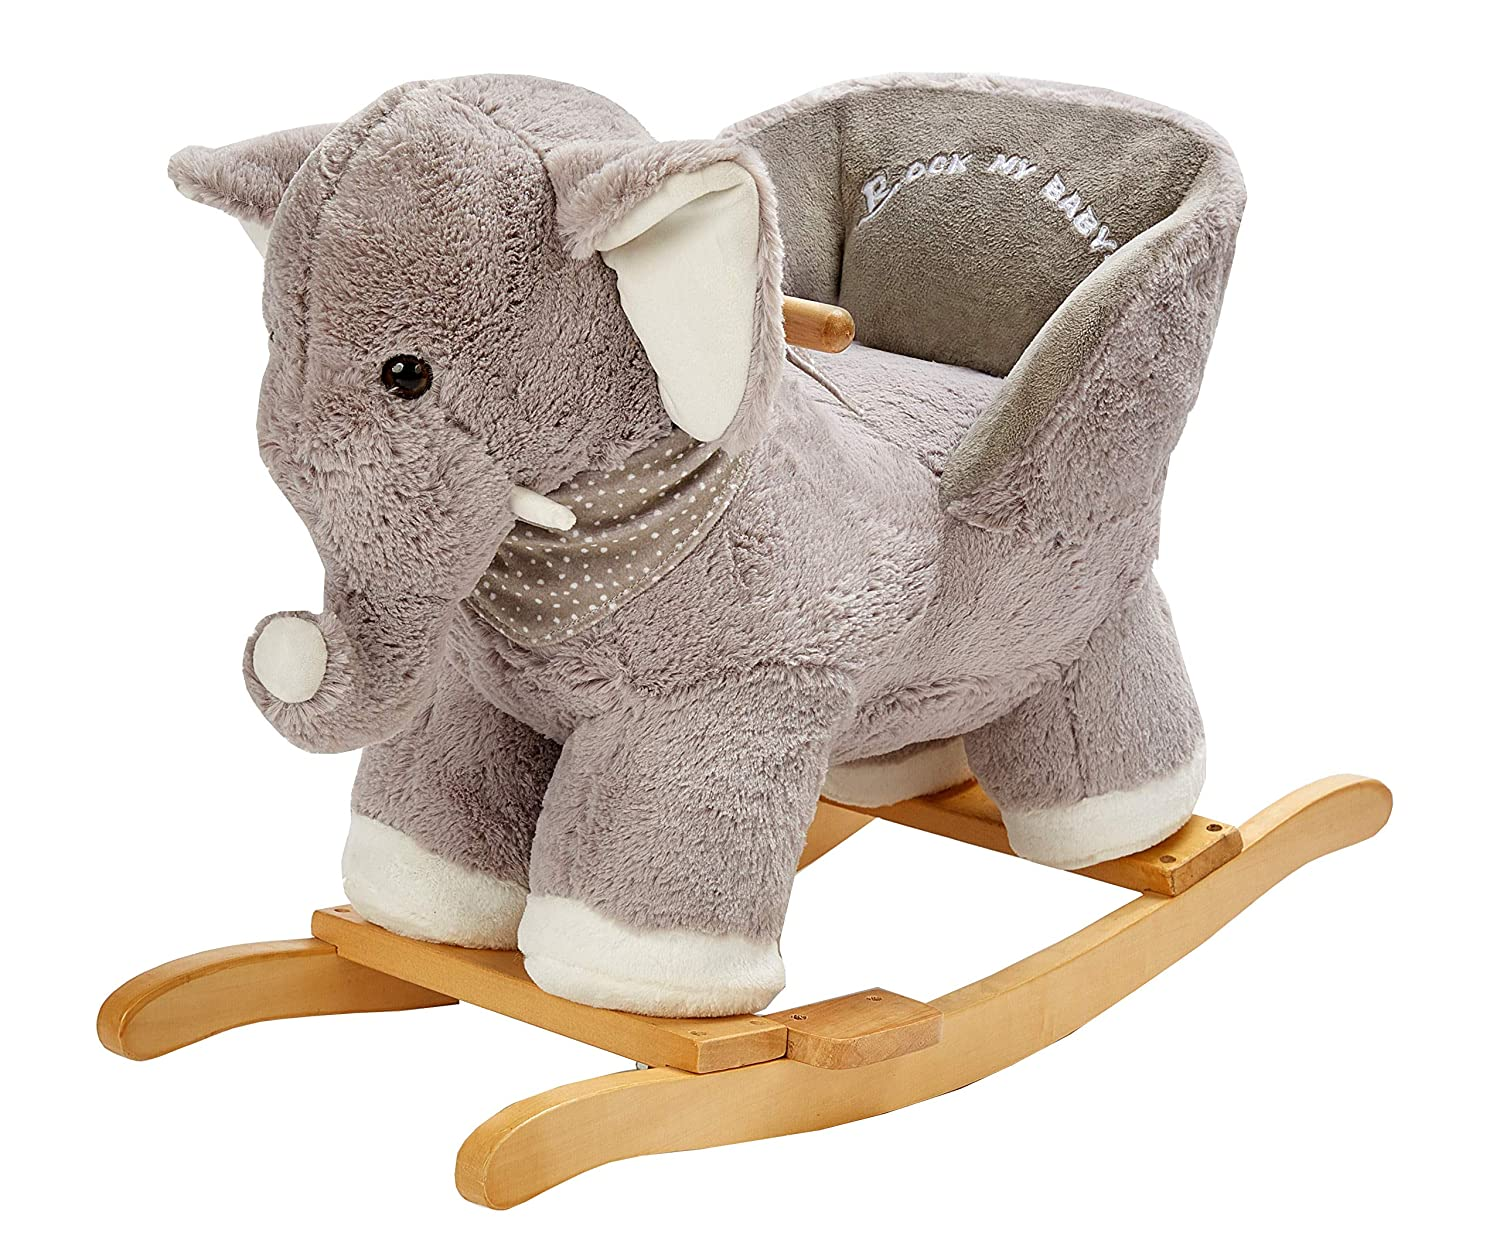 Excellent Rock My Baby Baby Rocking Horse Elephant With Chair Plush Stuffed Rocking Animals Wooden Rocking Toy Horse Baby Rocker Animal Ride On Home Decor For Unemploymentrelief Wooden Chair Designs For Living Room Unemploymentrelieforg